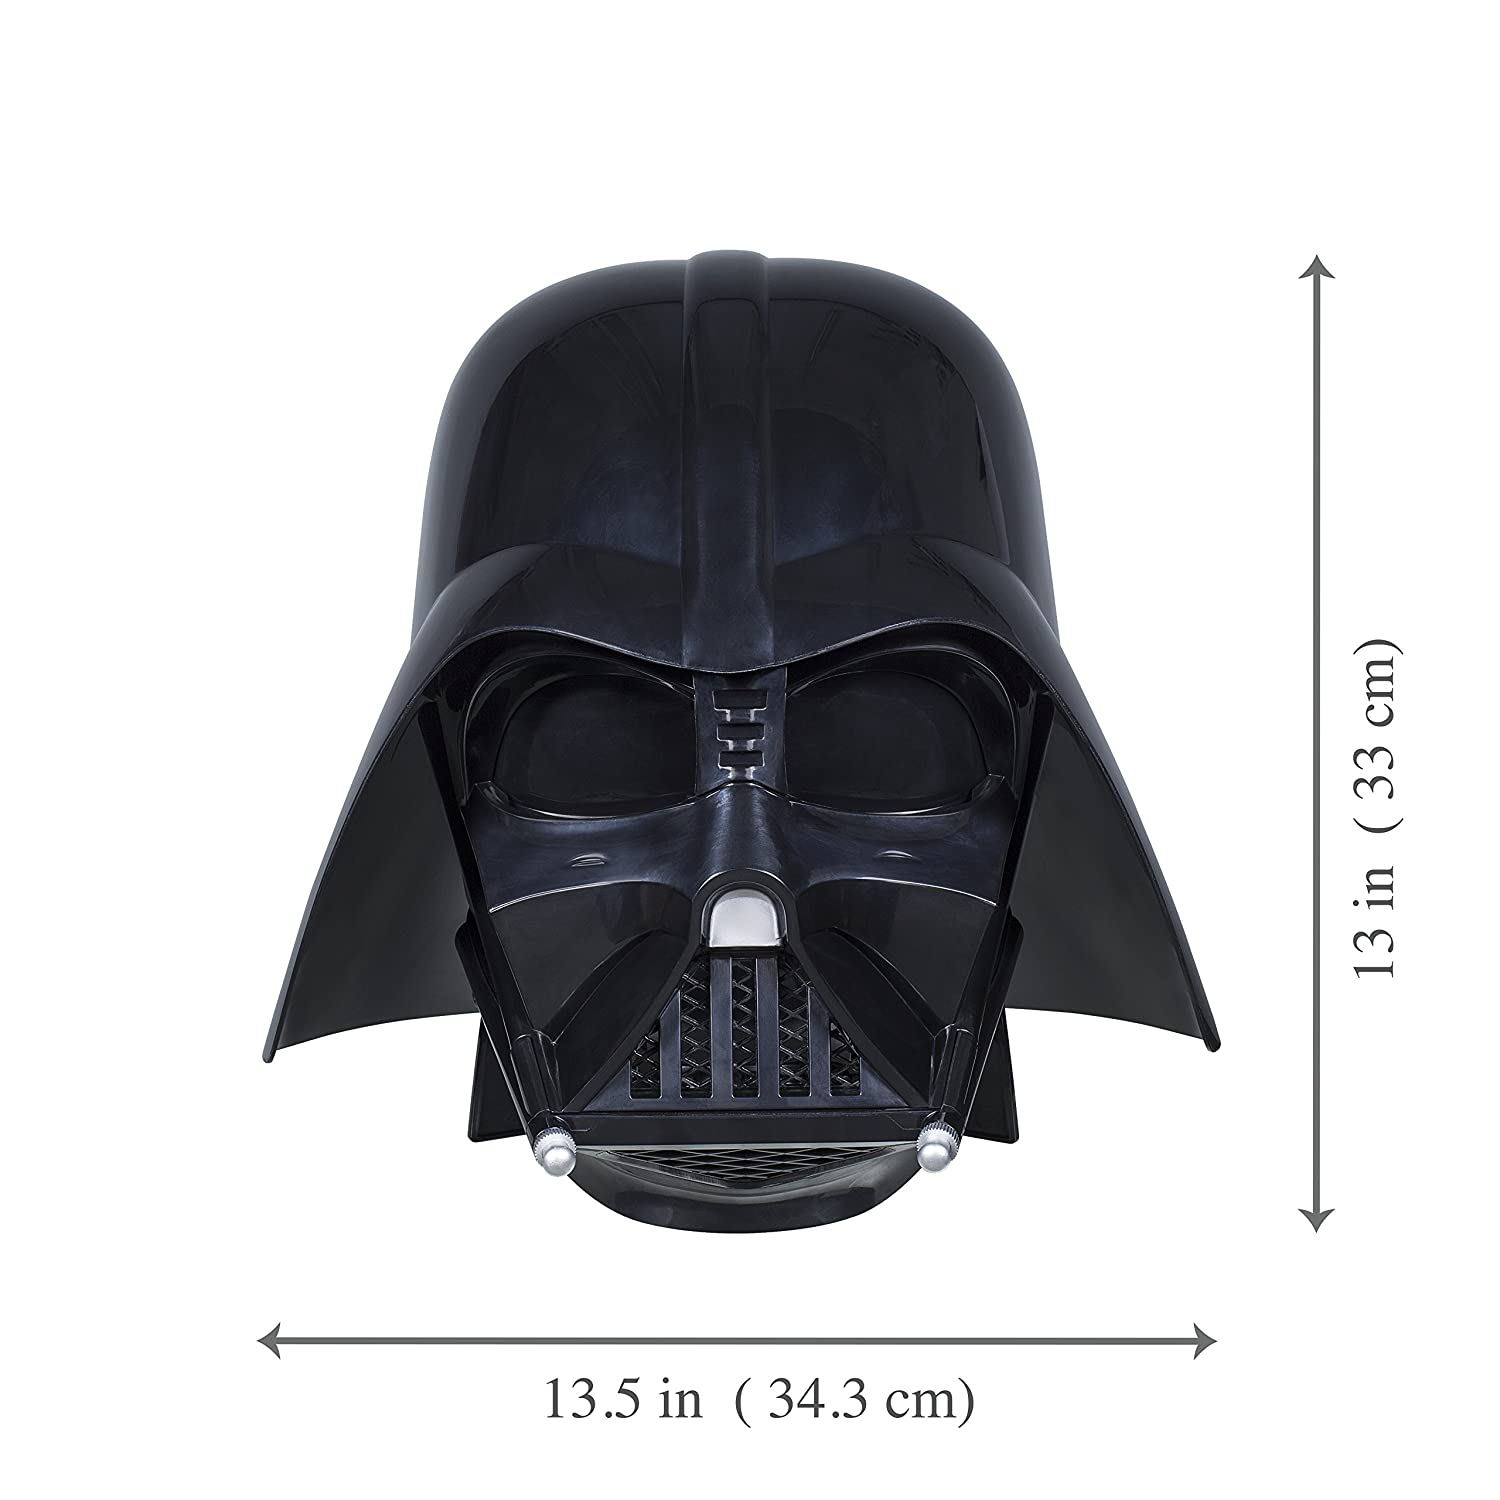 a90f2572 Amazon.com: Star Wars The Black Series Darth Vader Premium Electronic  Helmet (Amazon Exclusive): Toys & Games